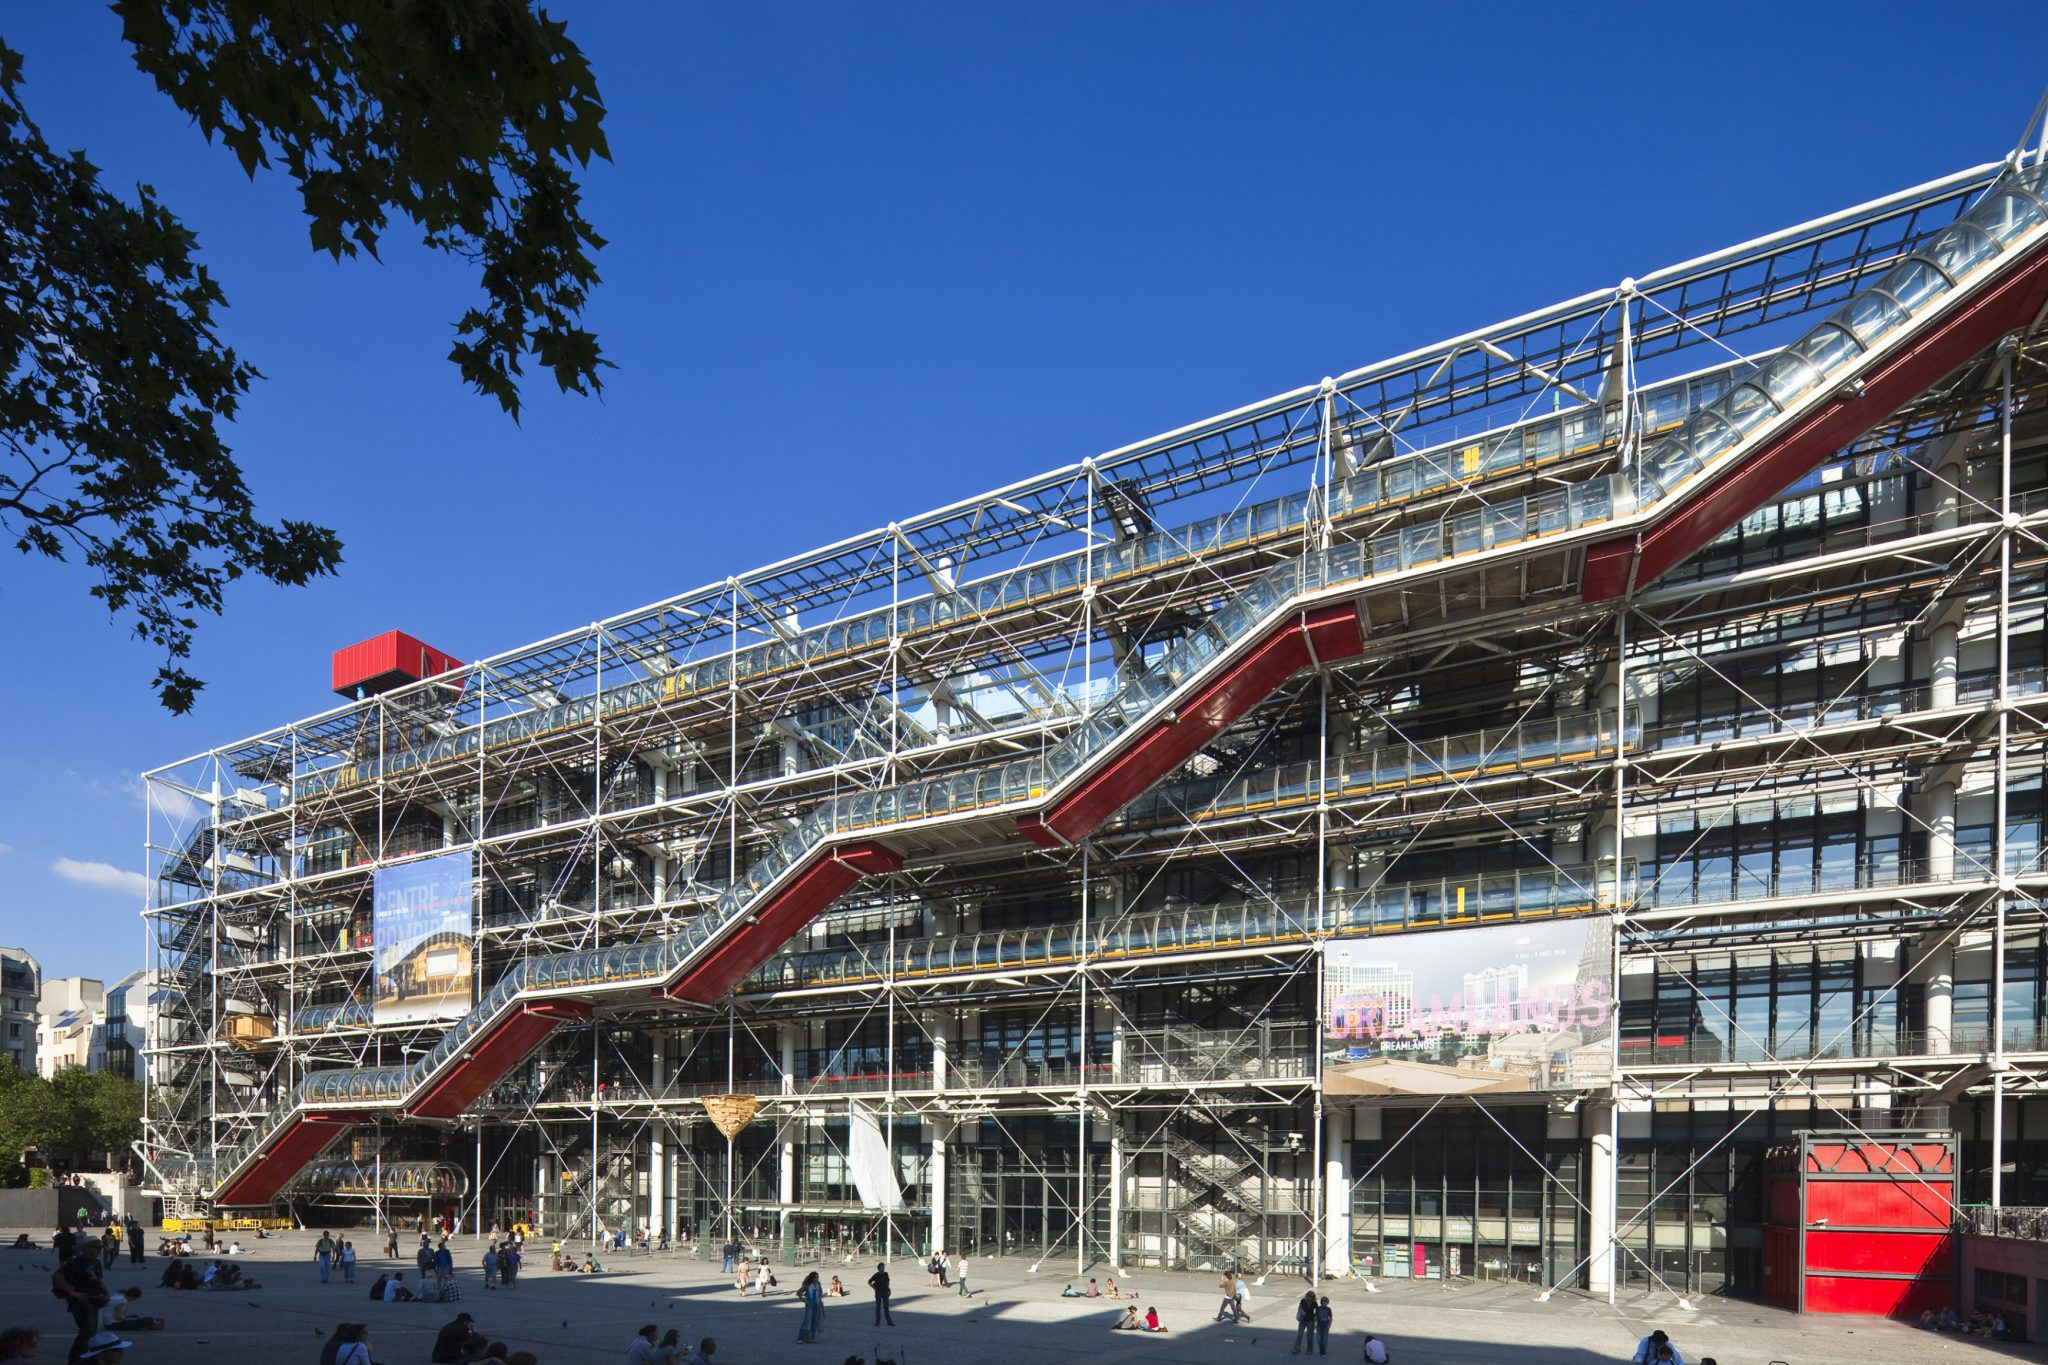 La scala mobile del Centre Pompidou